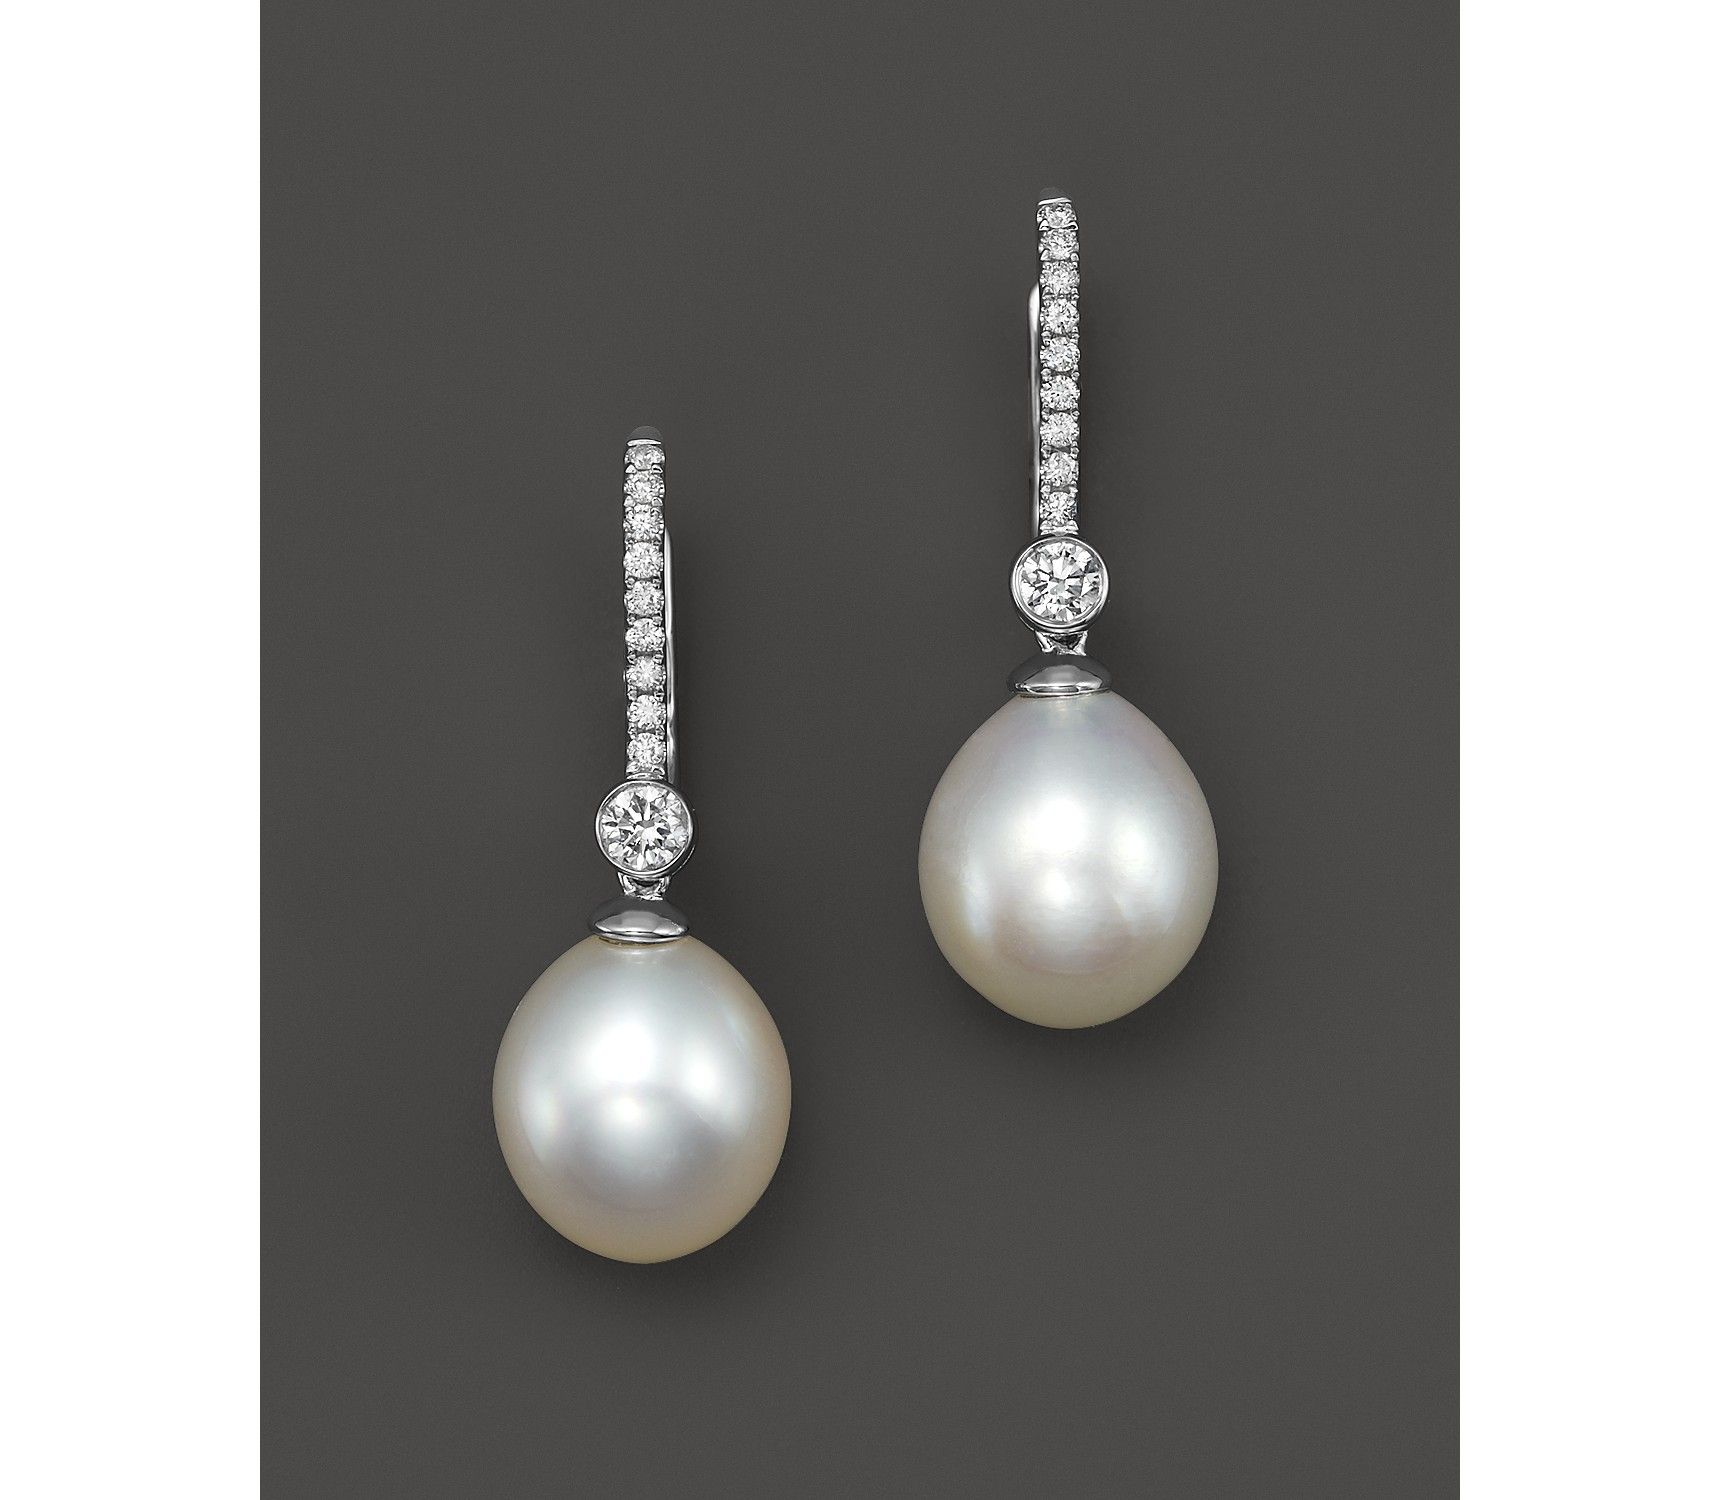 Pair of Light Golden Color 11-12 mm Oval Shape South Sea Pearl Use for Earring